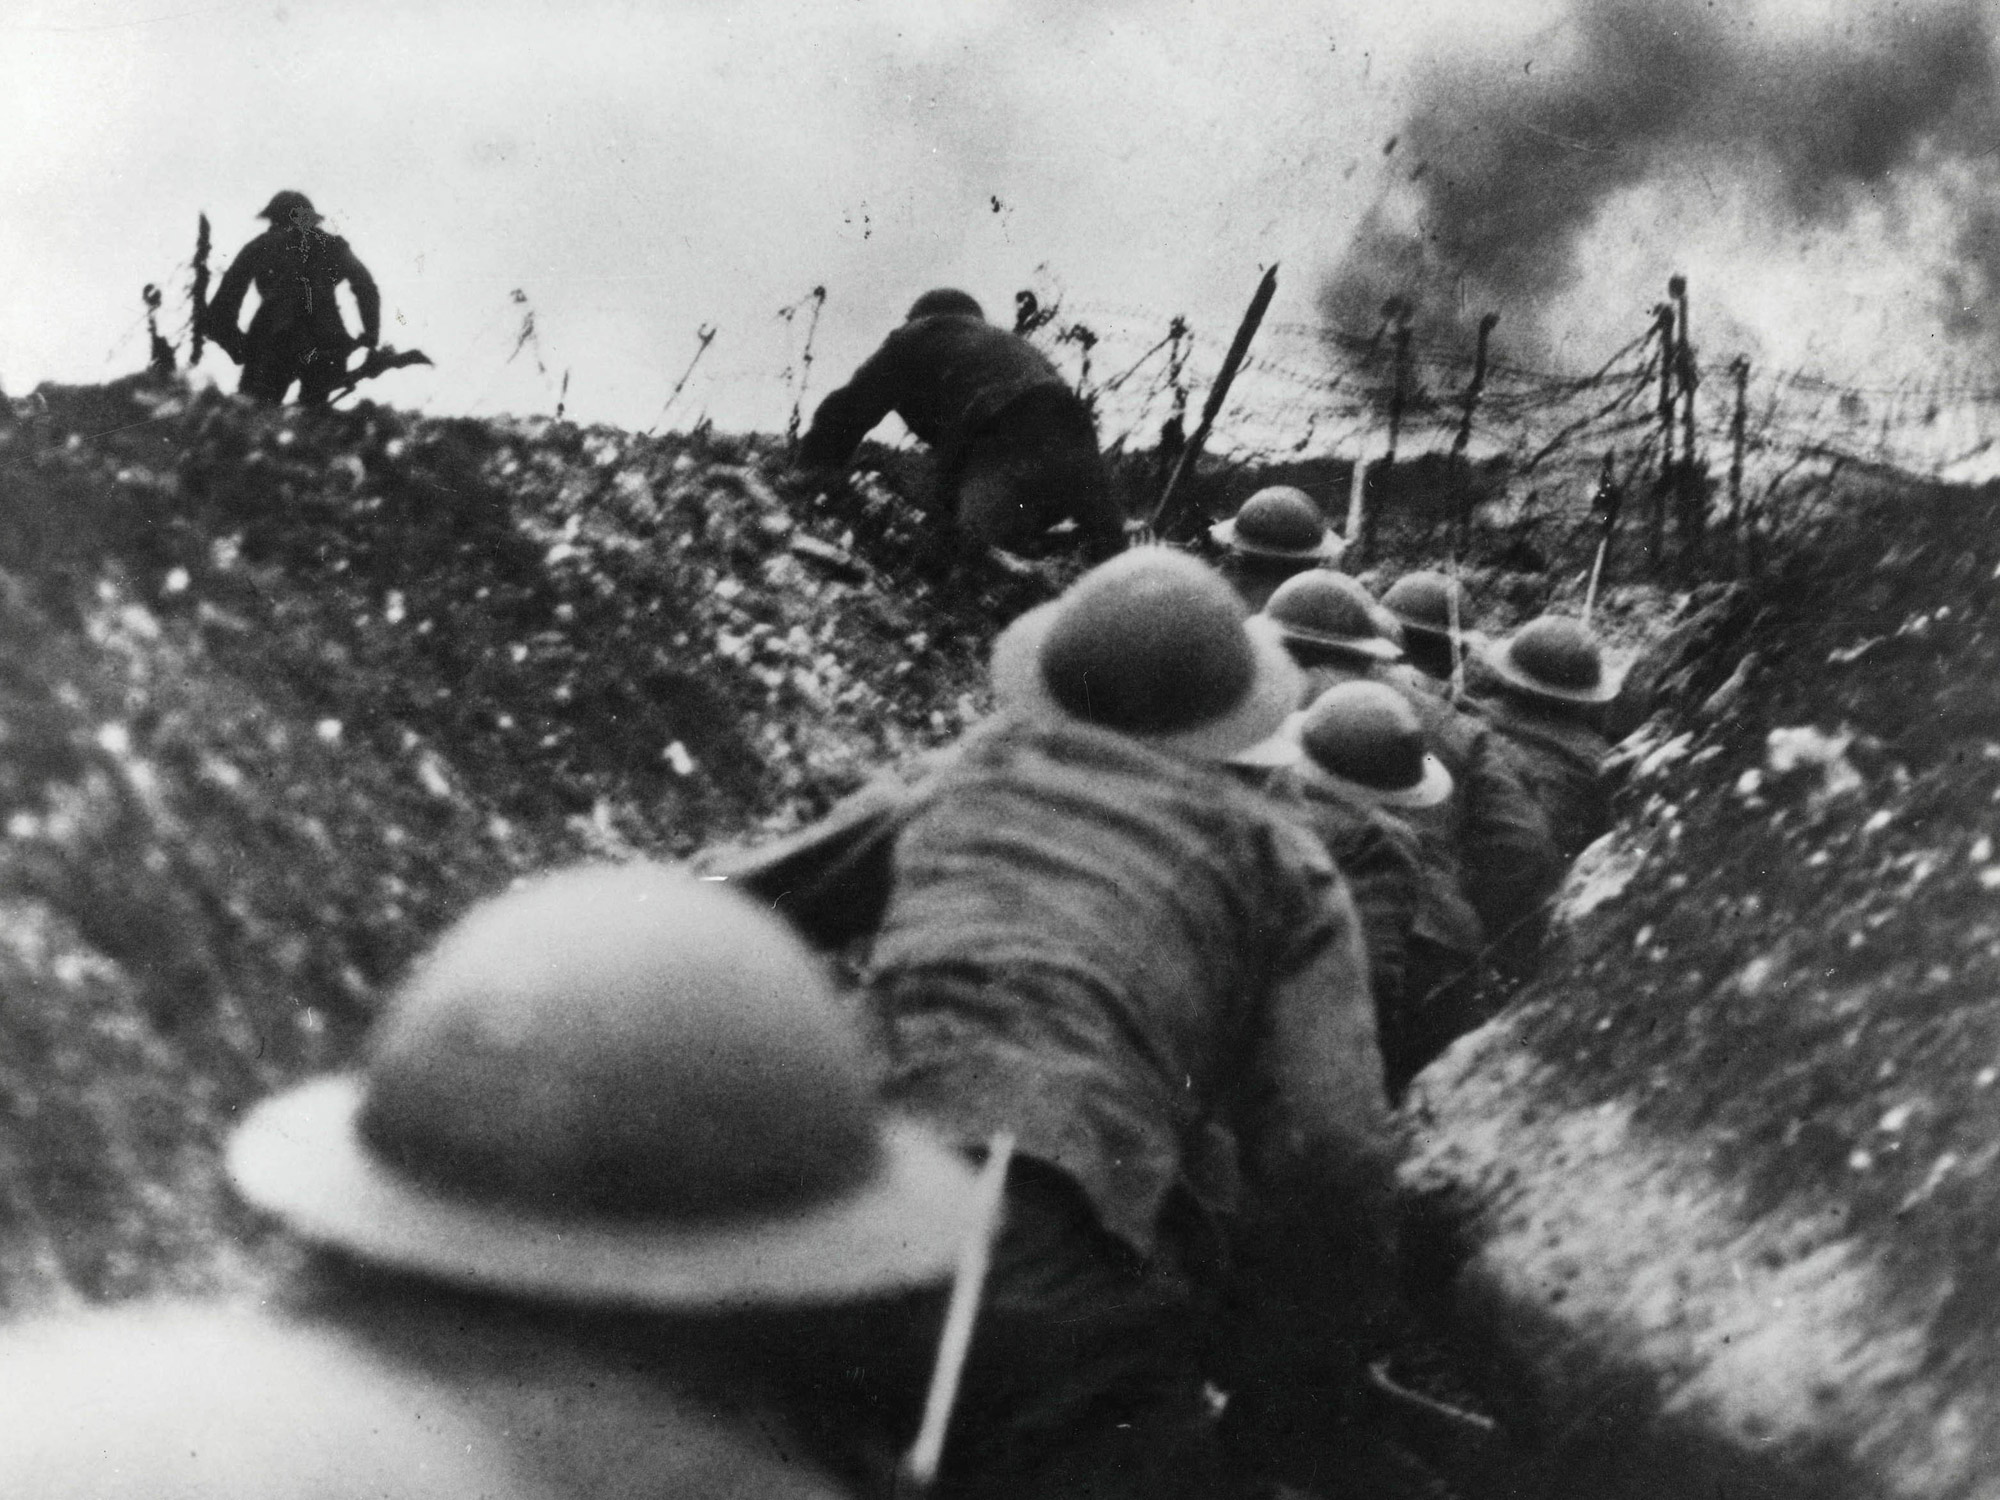 Going 'over the top' was the phrase for heading out of the trench and towards the enemy